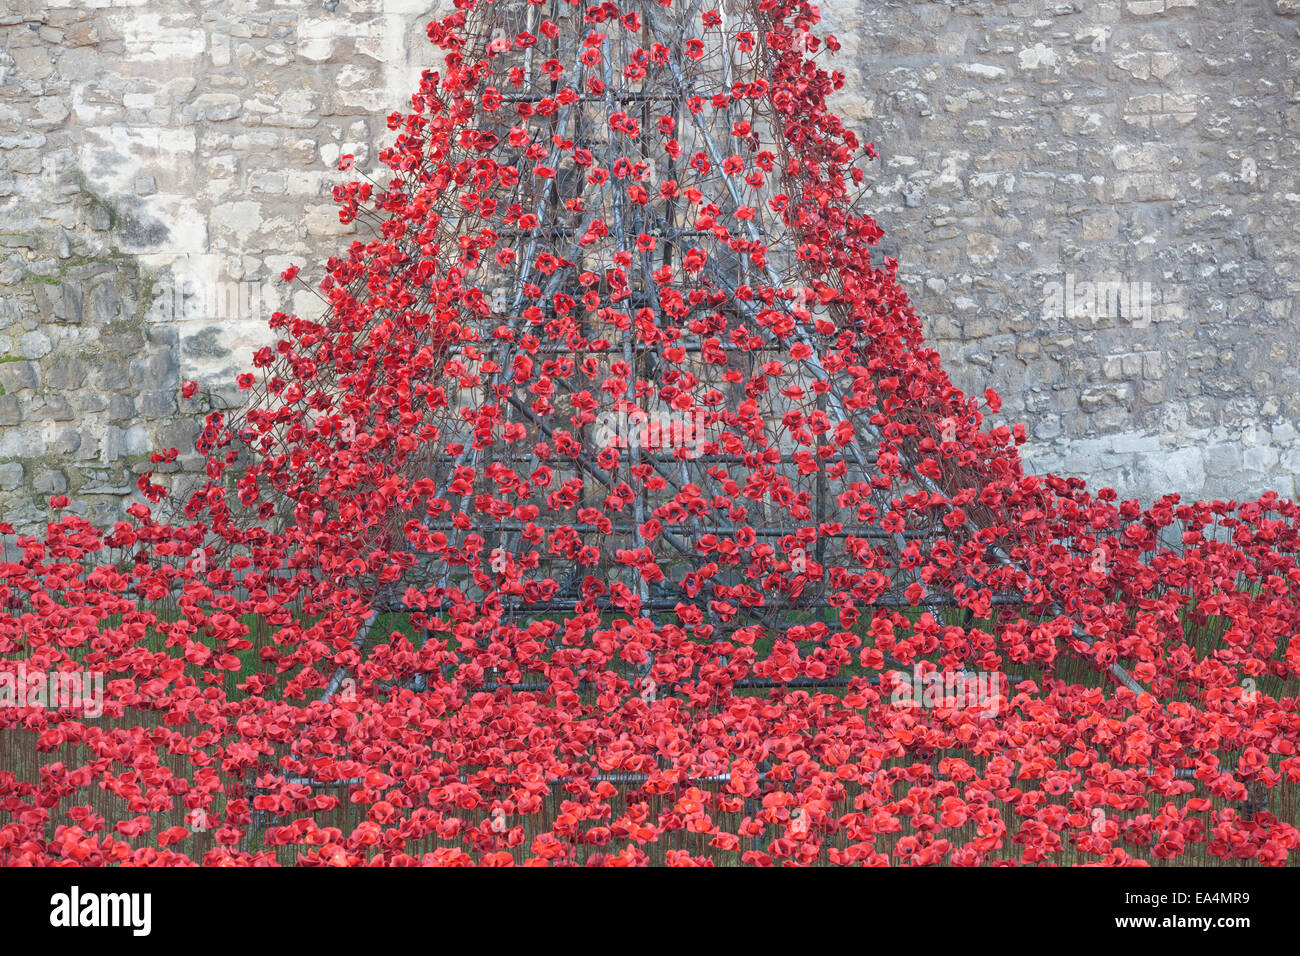 Tower of London, UK. 6th November 2014. Art installation Blood Swept Lands and Seas of Red at the Tower of London, Stock Photo